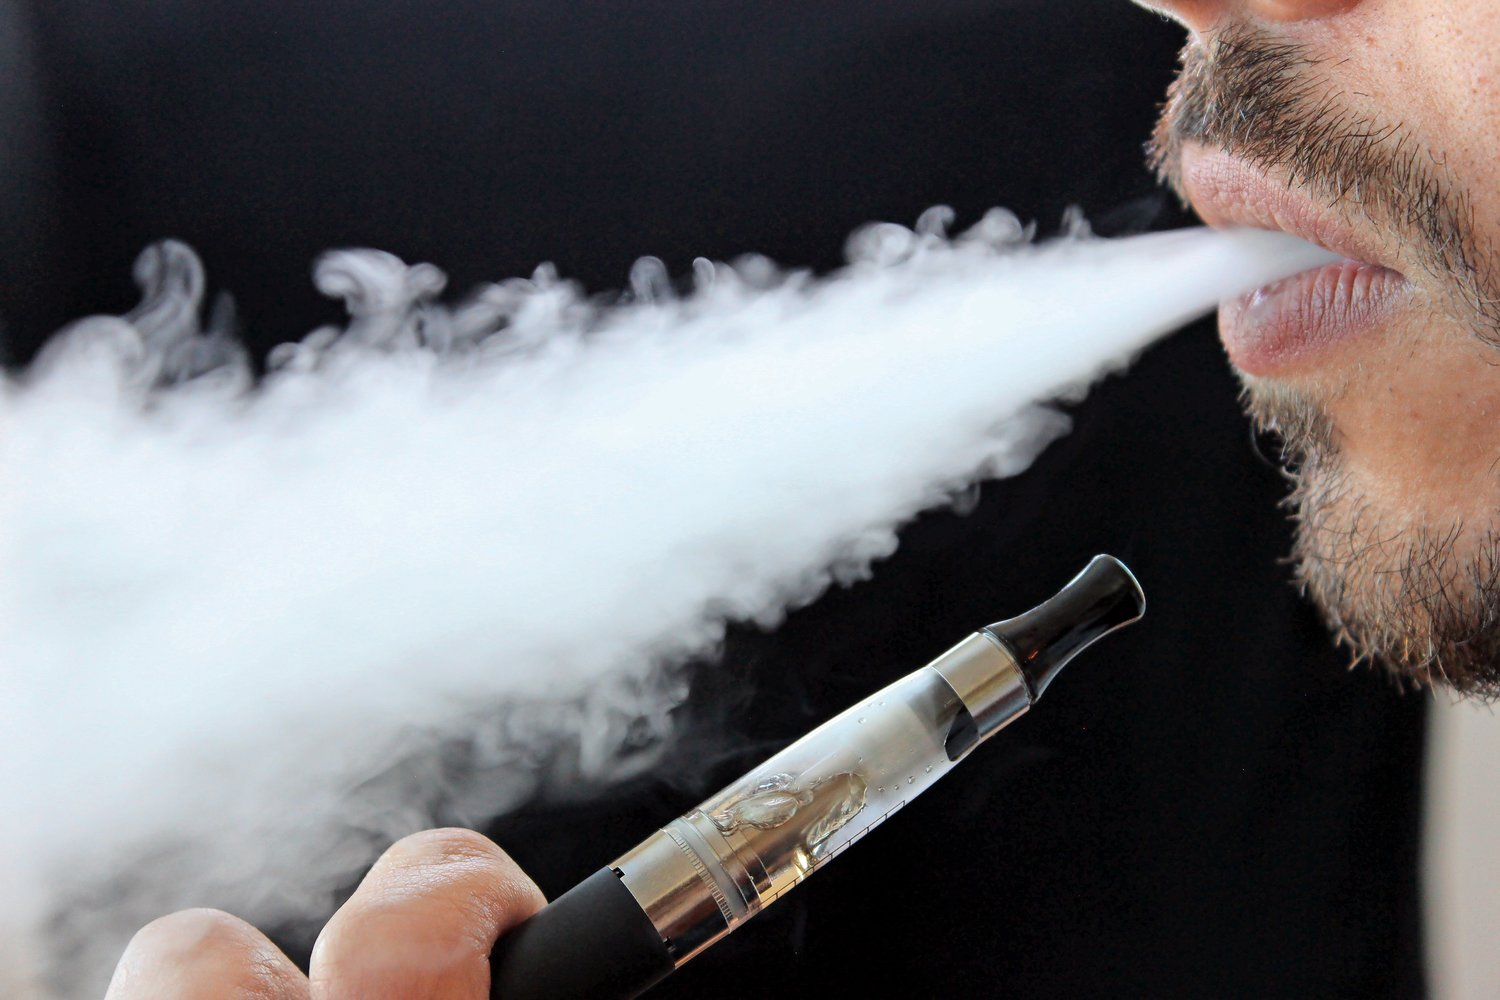 The sale of electronic cigarettes and flavored e-liquids is being challenged on multiple levels — federally, statewide and locally, in the Town of Hempstead.